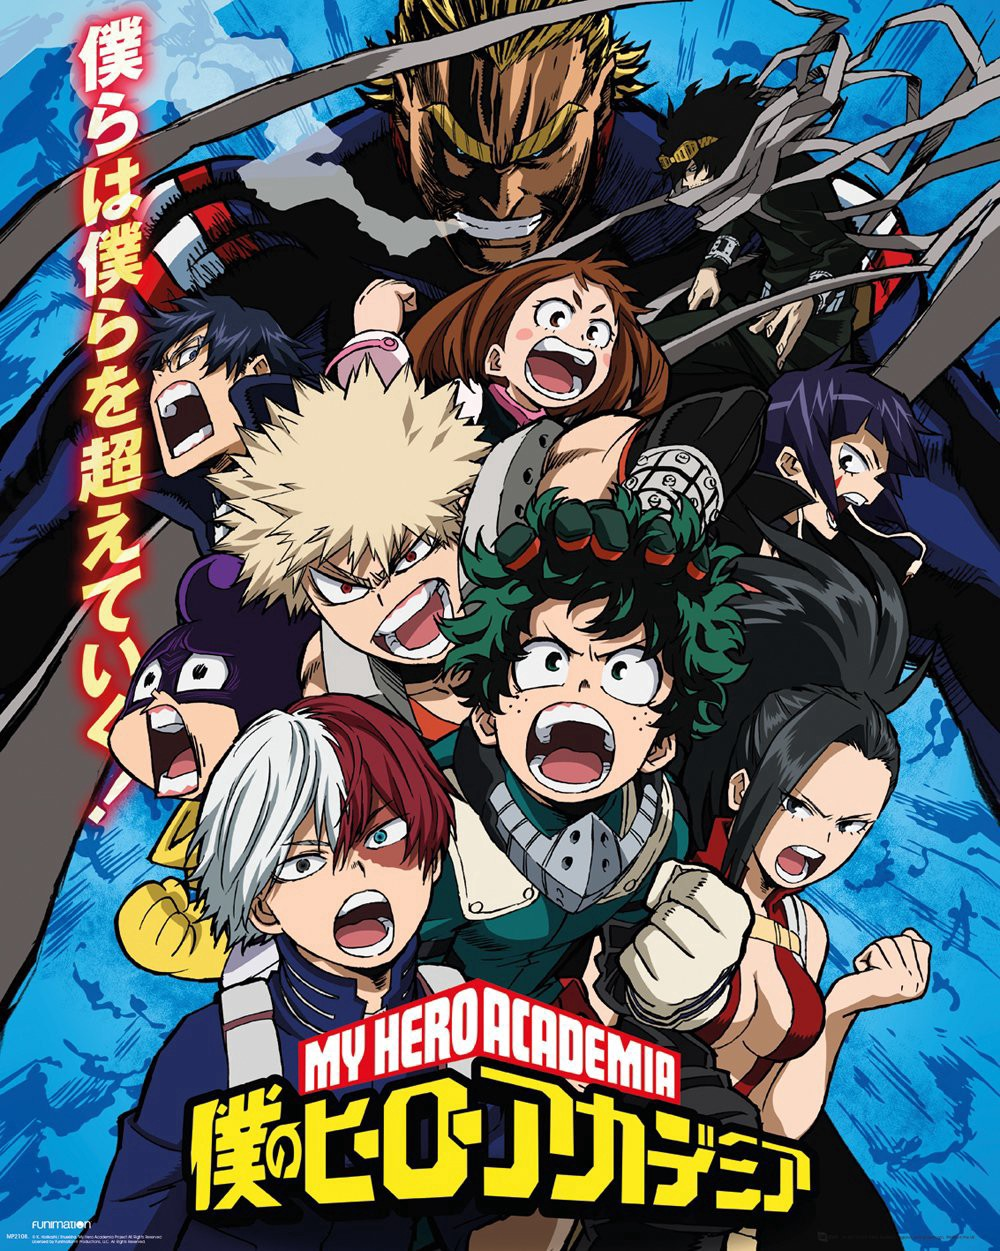 My Hero Academia Heroes Rising 2019 4k Ultra Hd Blu Ray Ultra Hd Review By Kendre Dwight Medium